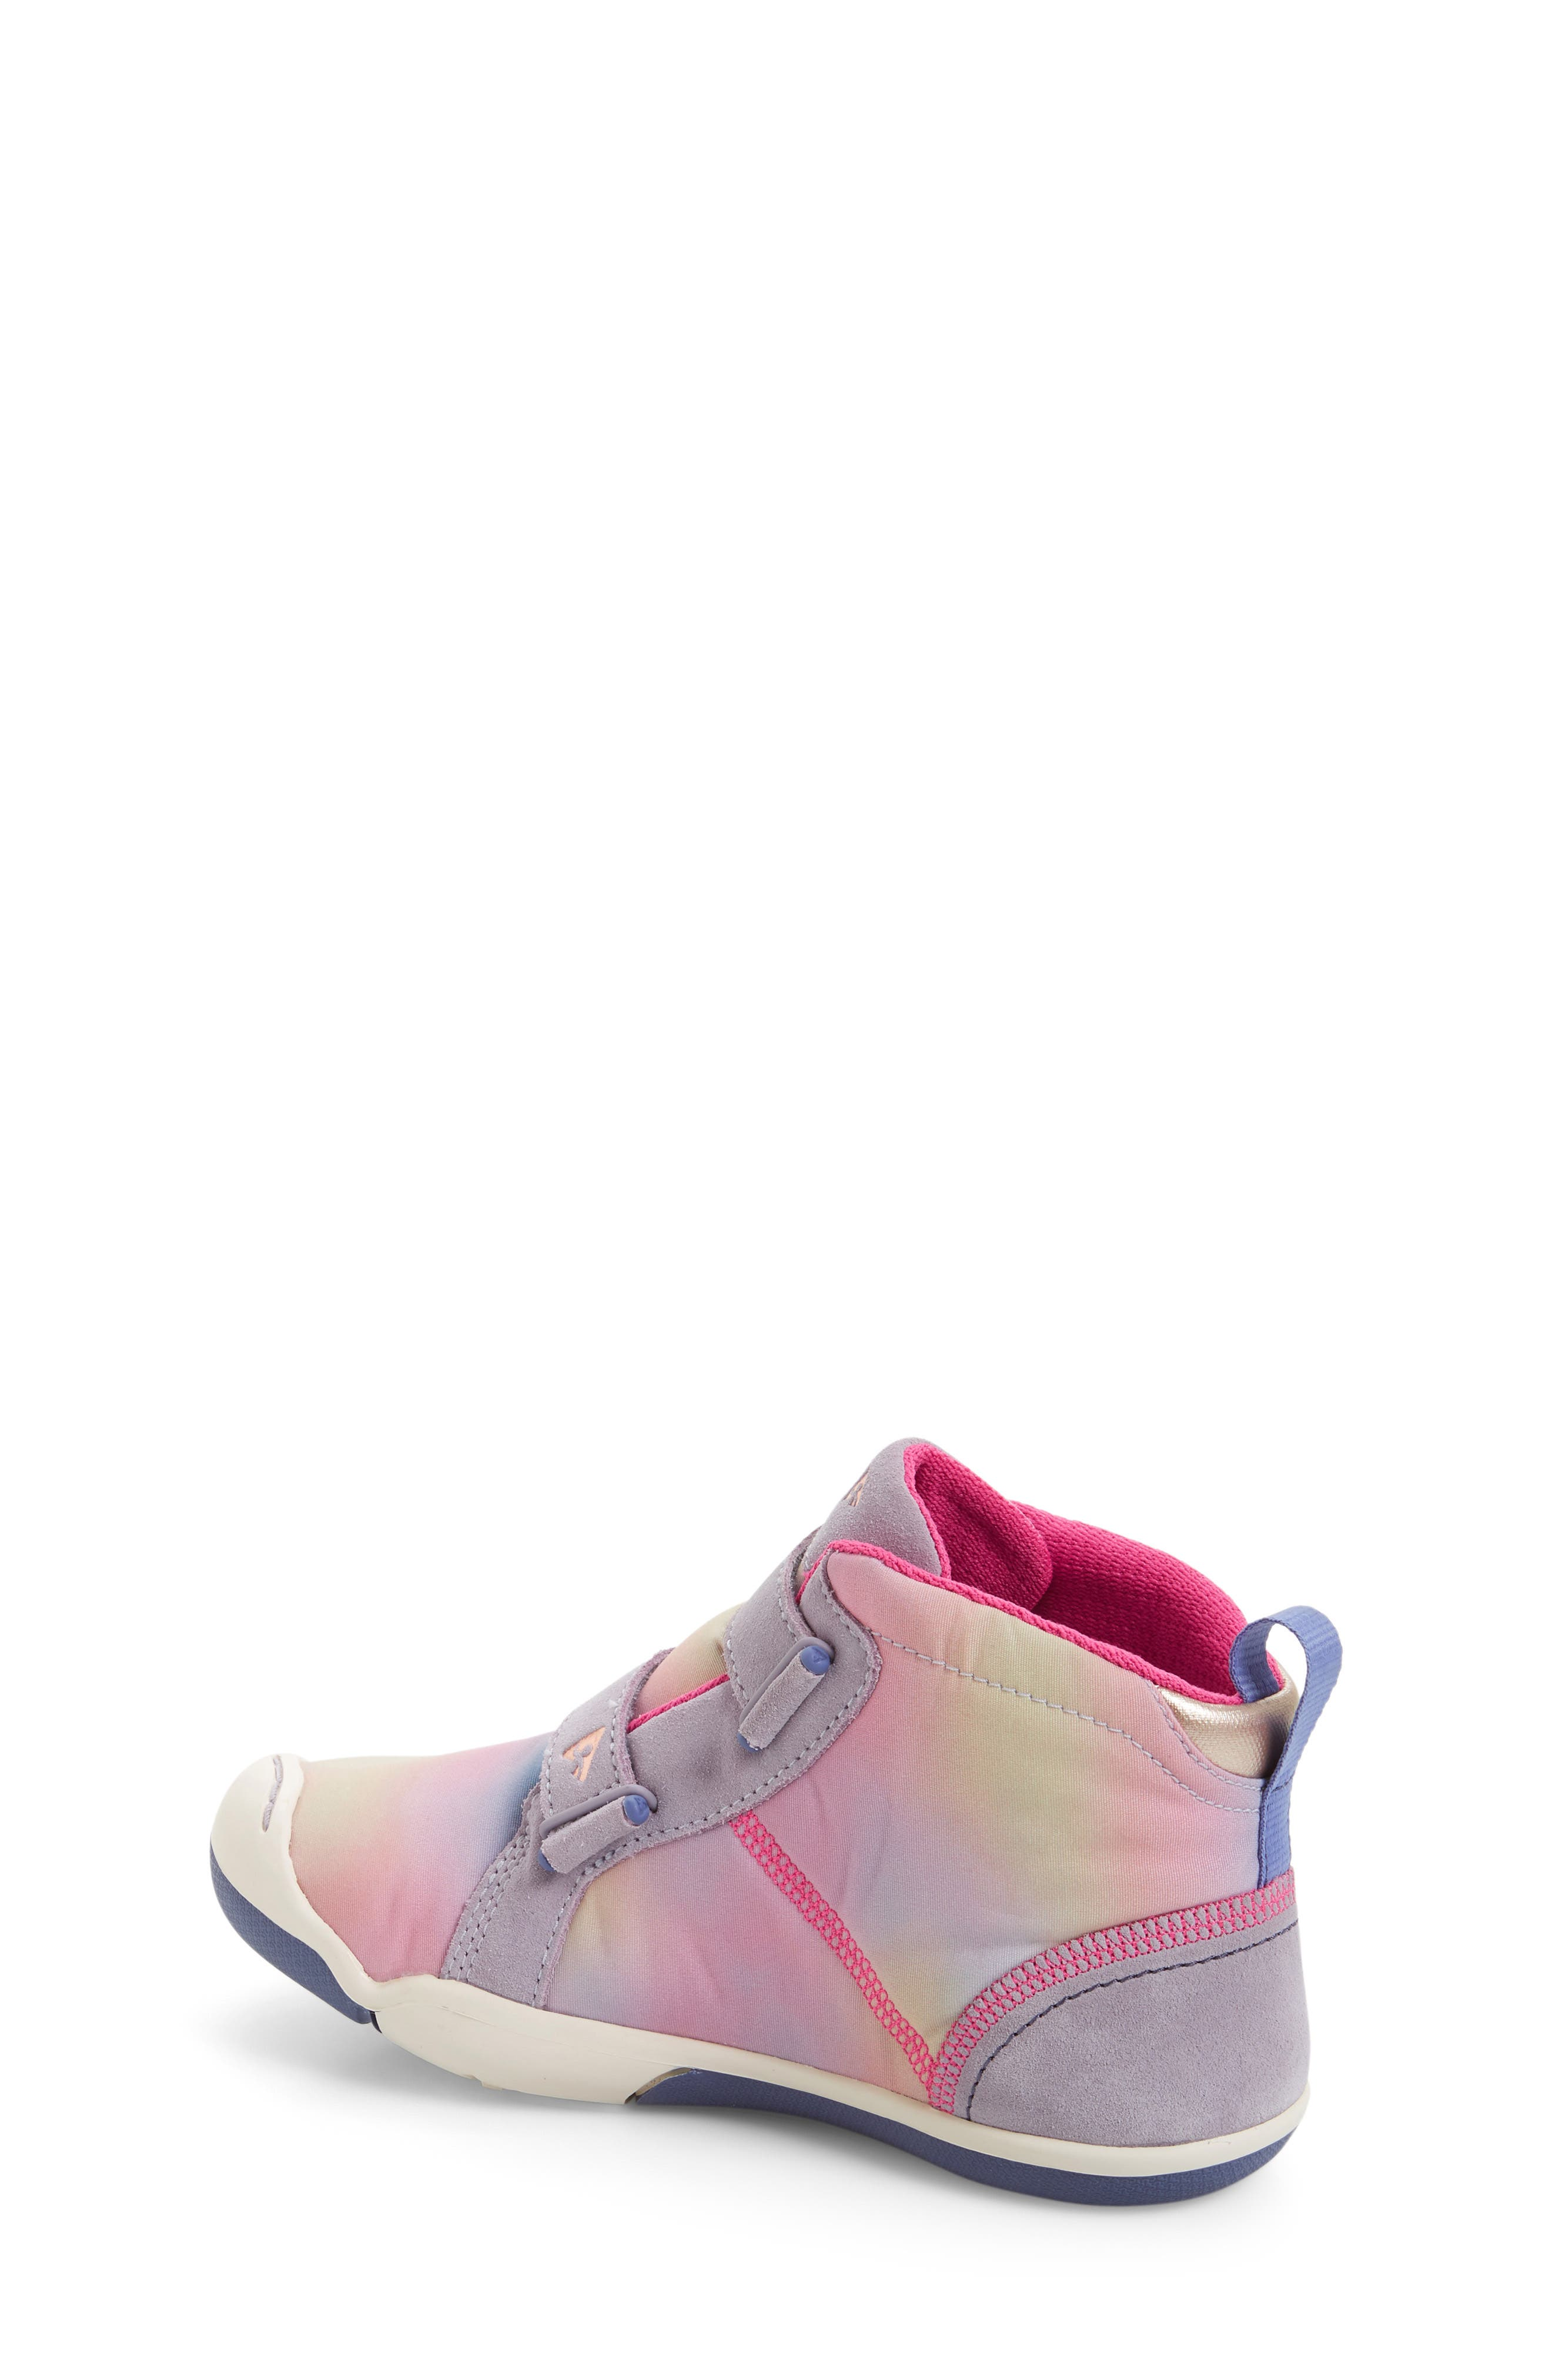 Max Customizable High Top Sneaker,                             Alternate thumbnail 2, color,                             650